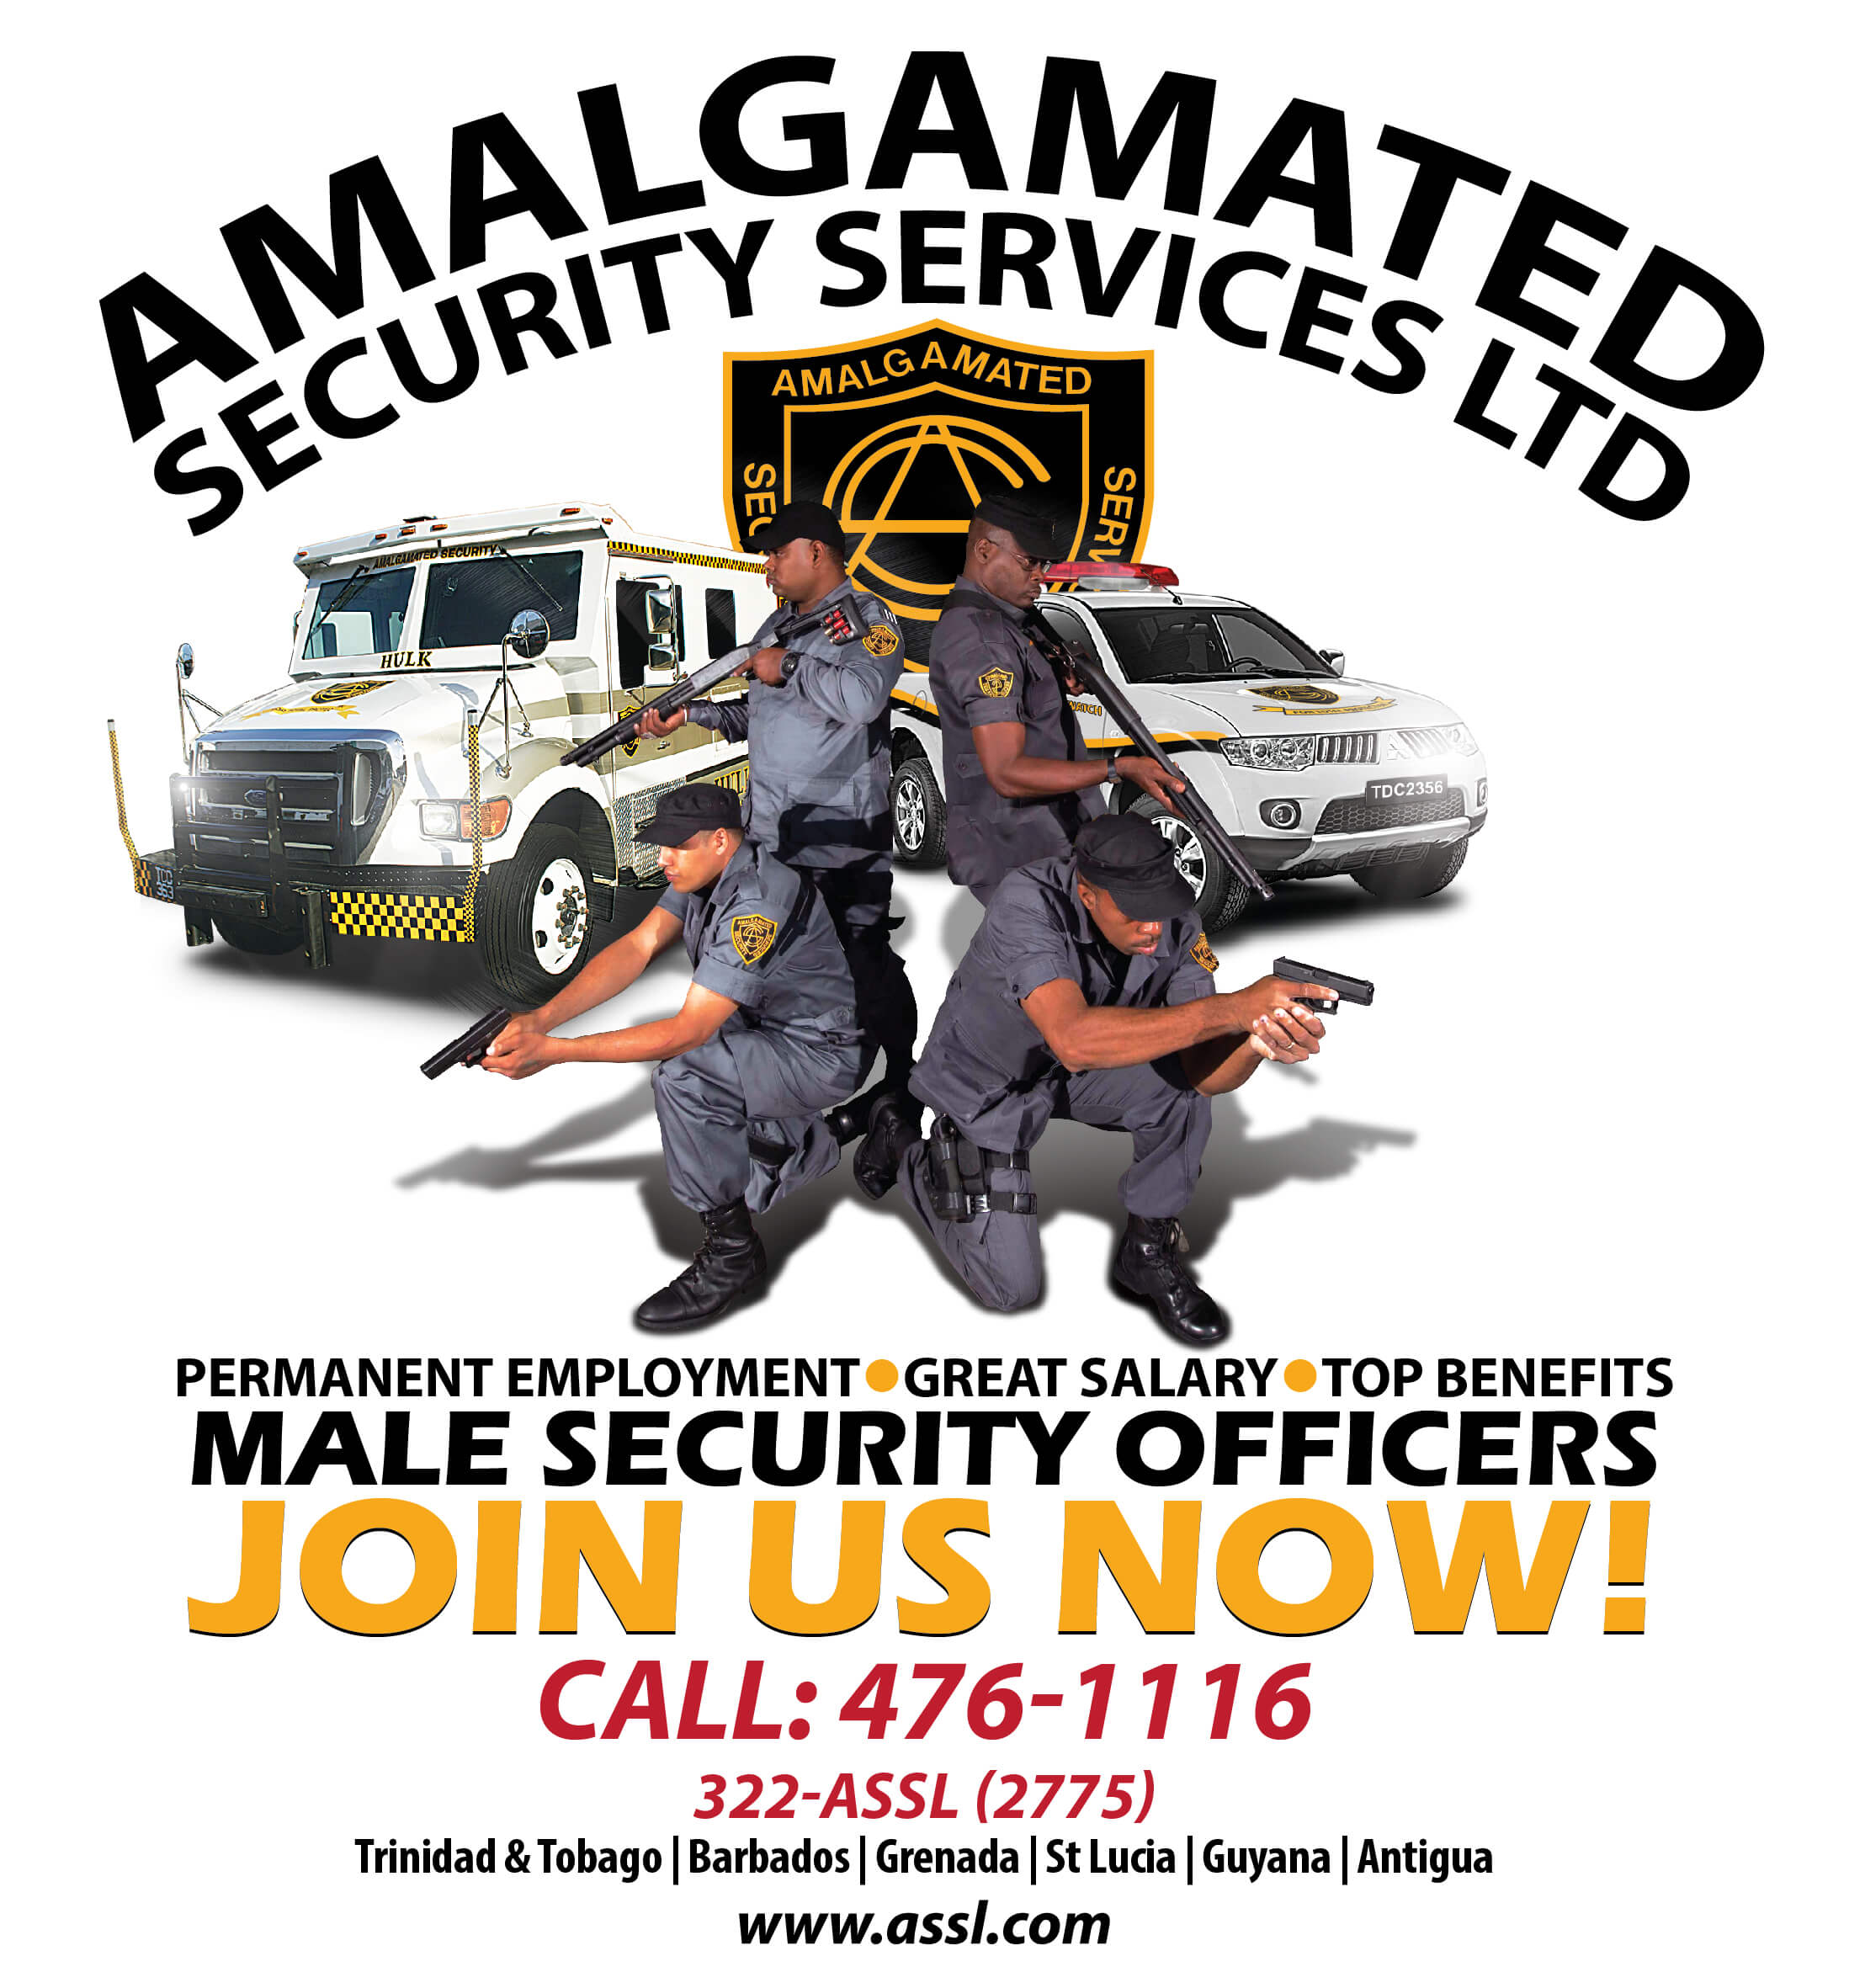 Amalgamated Security Services Limited Careers Now Hiring Male Security Officers